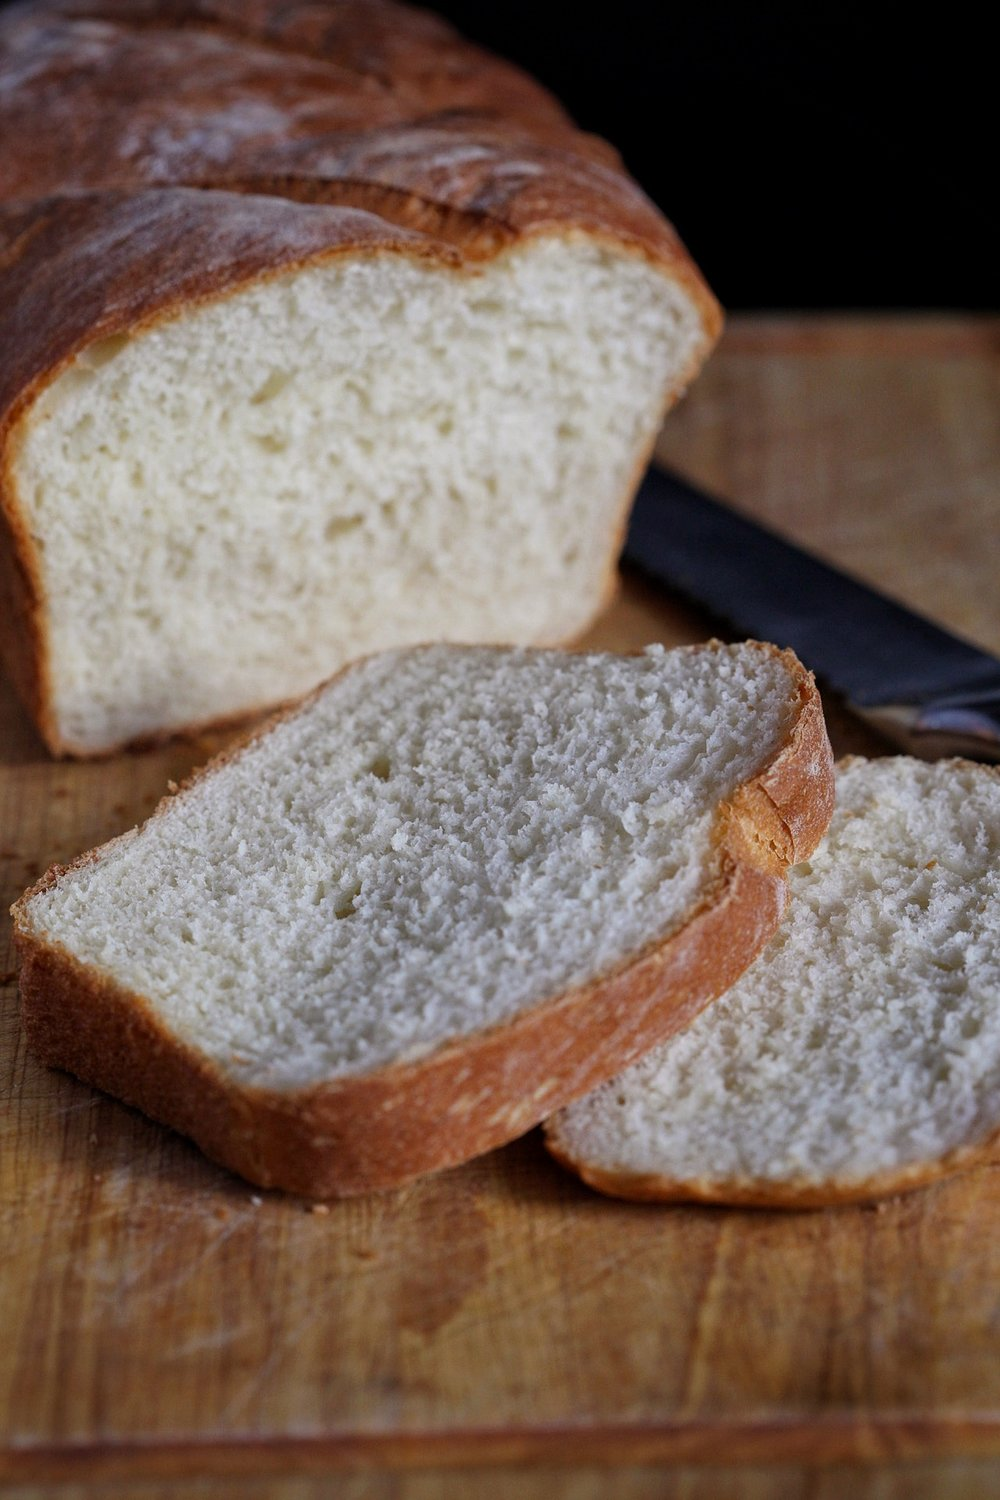 Homemade sandwich bread is one of the greatest treats ever! Makes the house smell amazing.